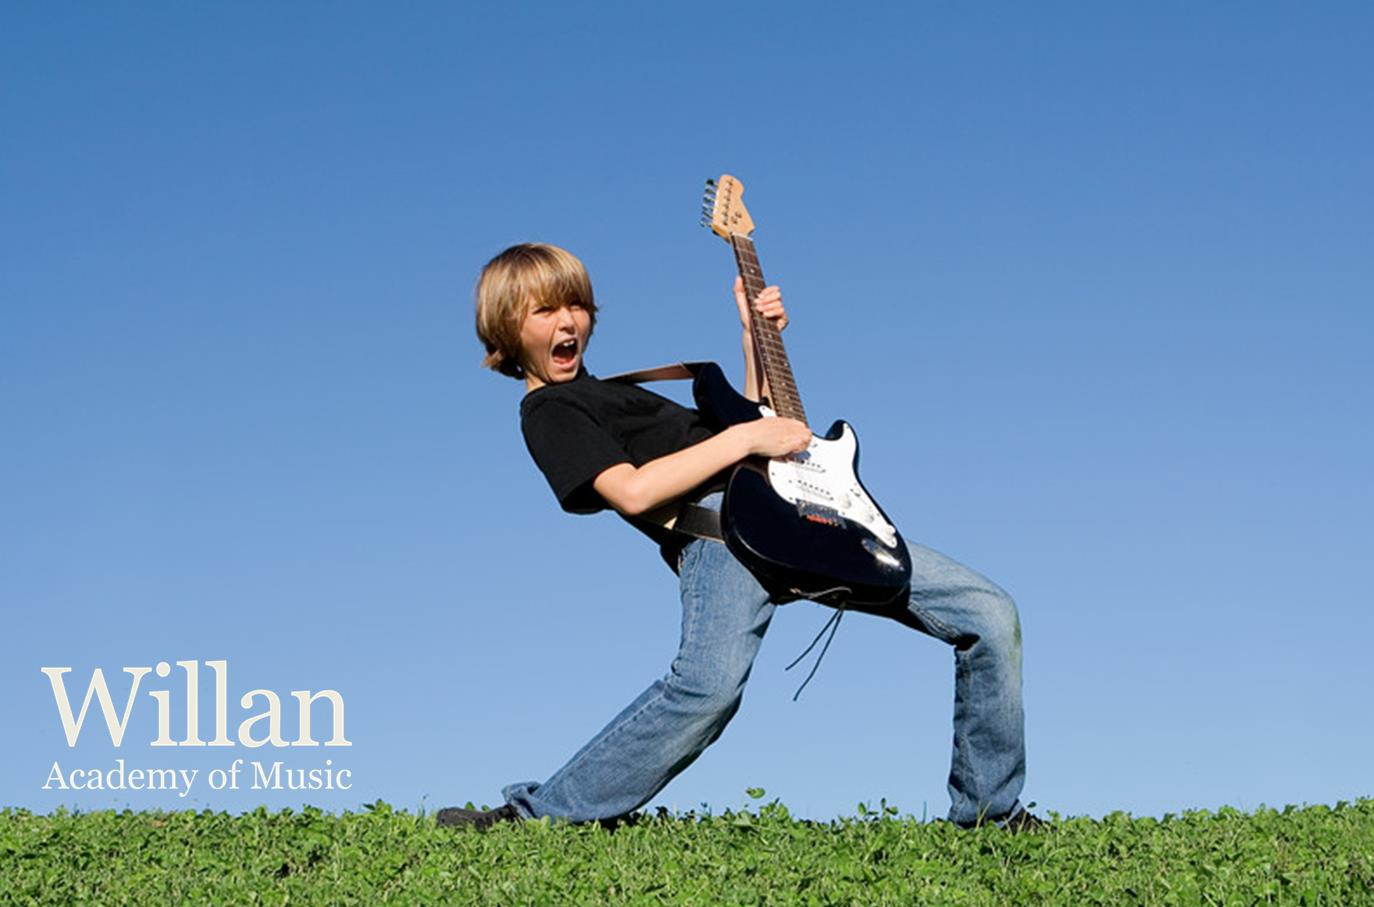 guitar lessons NYC for kids